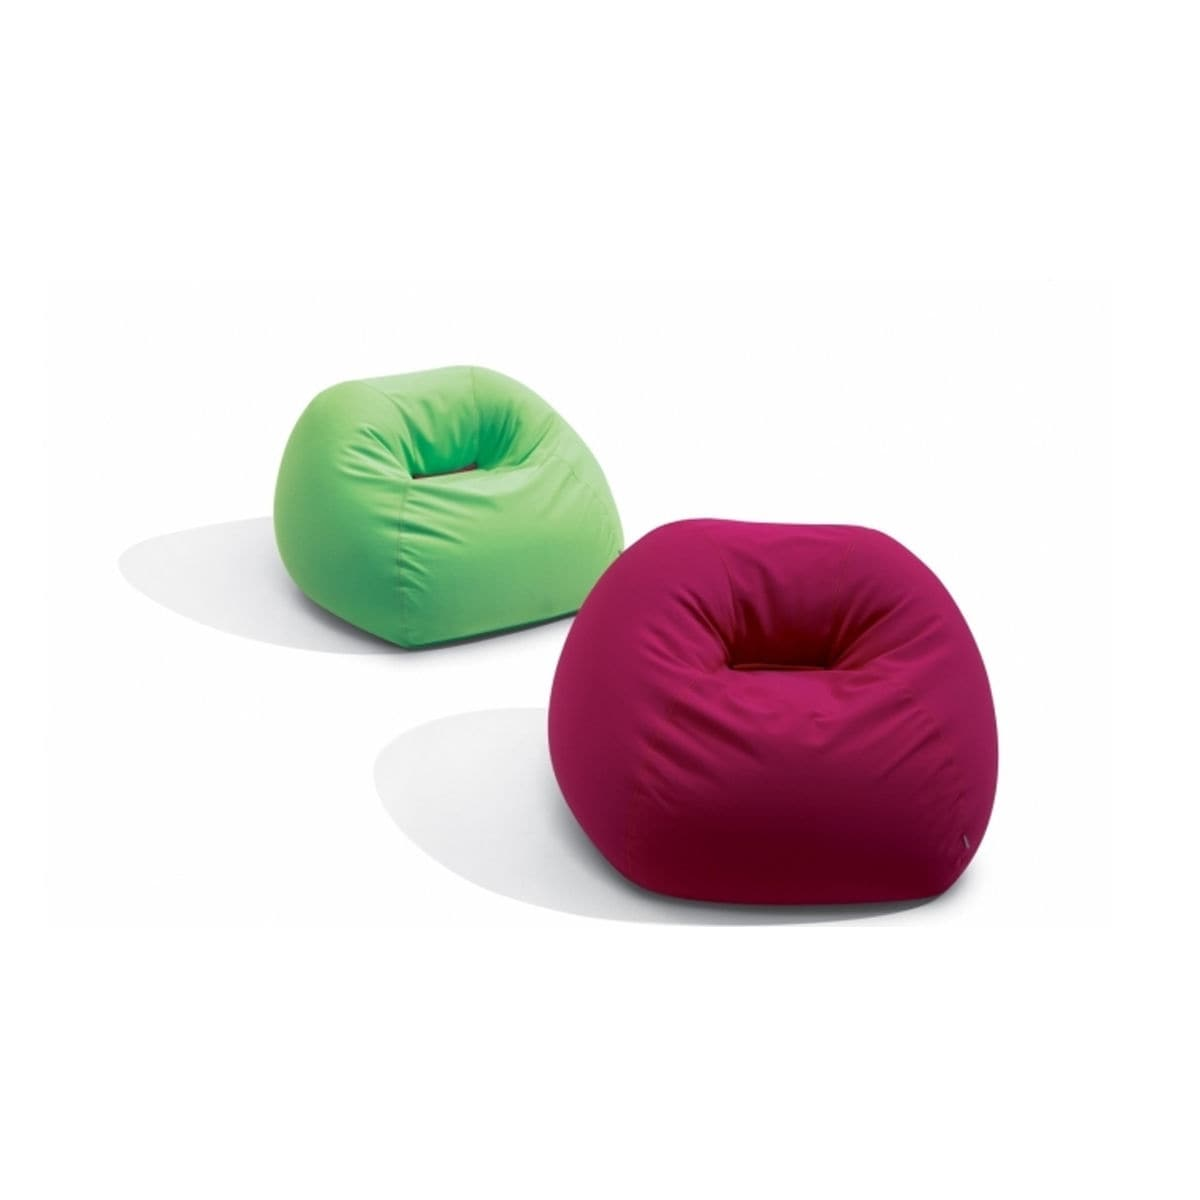 Enjoyable Contemporary Bean Bag Fabric Contract Tubby By Massimo Caraccident5 Cool Chair Designs And Ideas Caraccident5Info